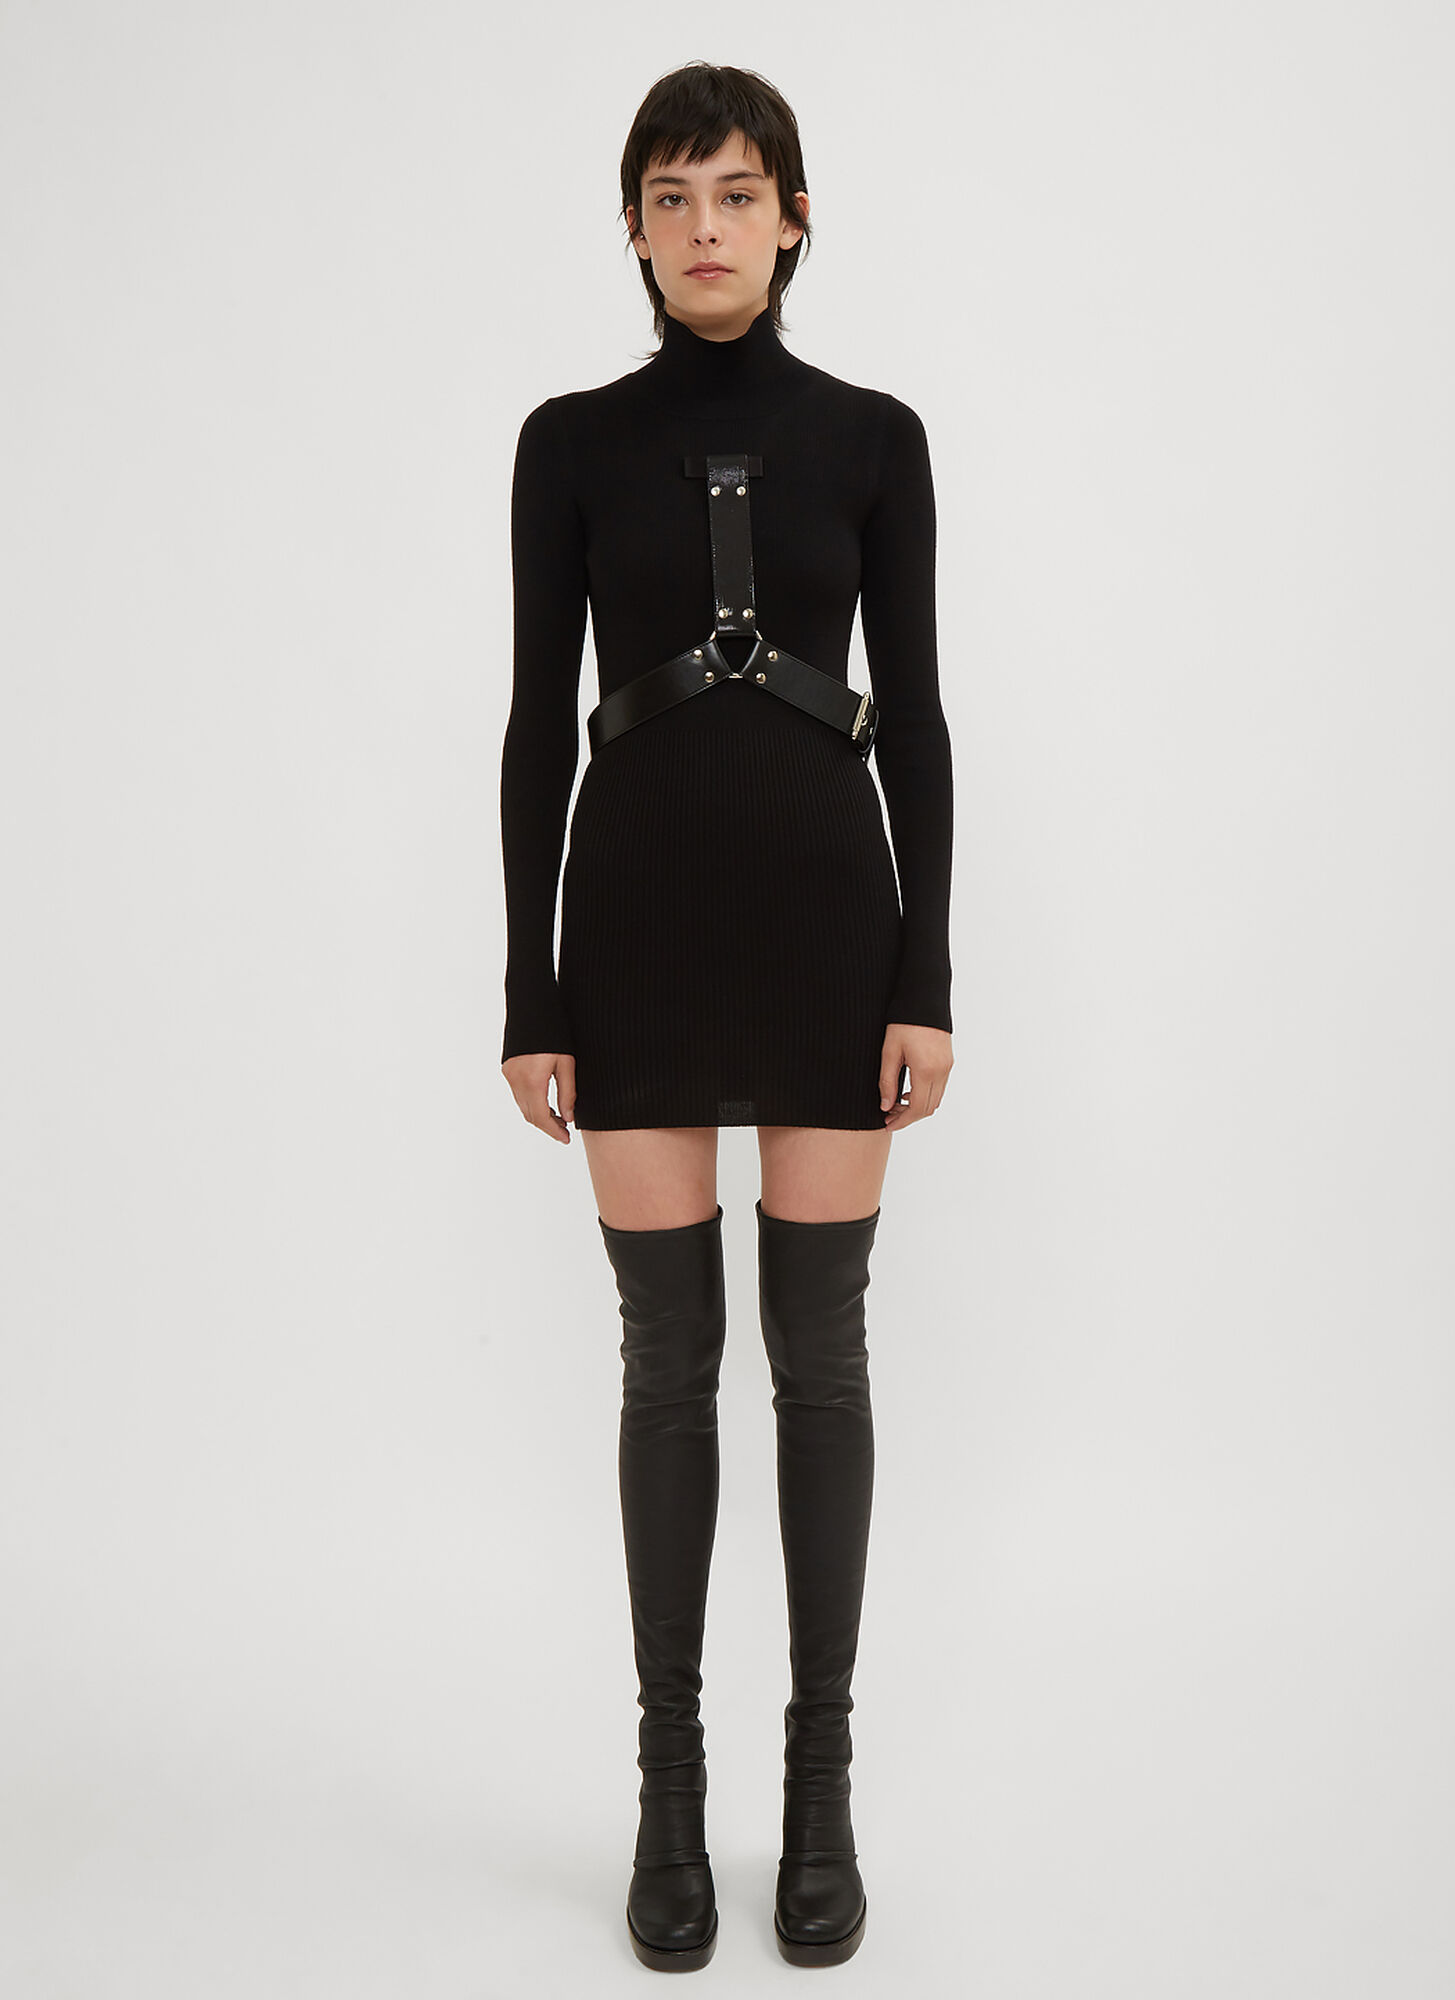 1017 ALYX 9SM Bondage Turtle Neck Dress in Black size M